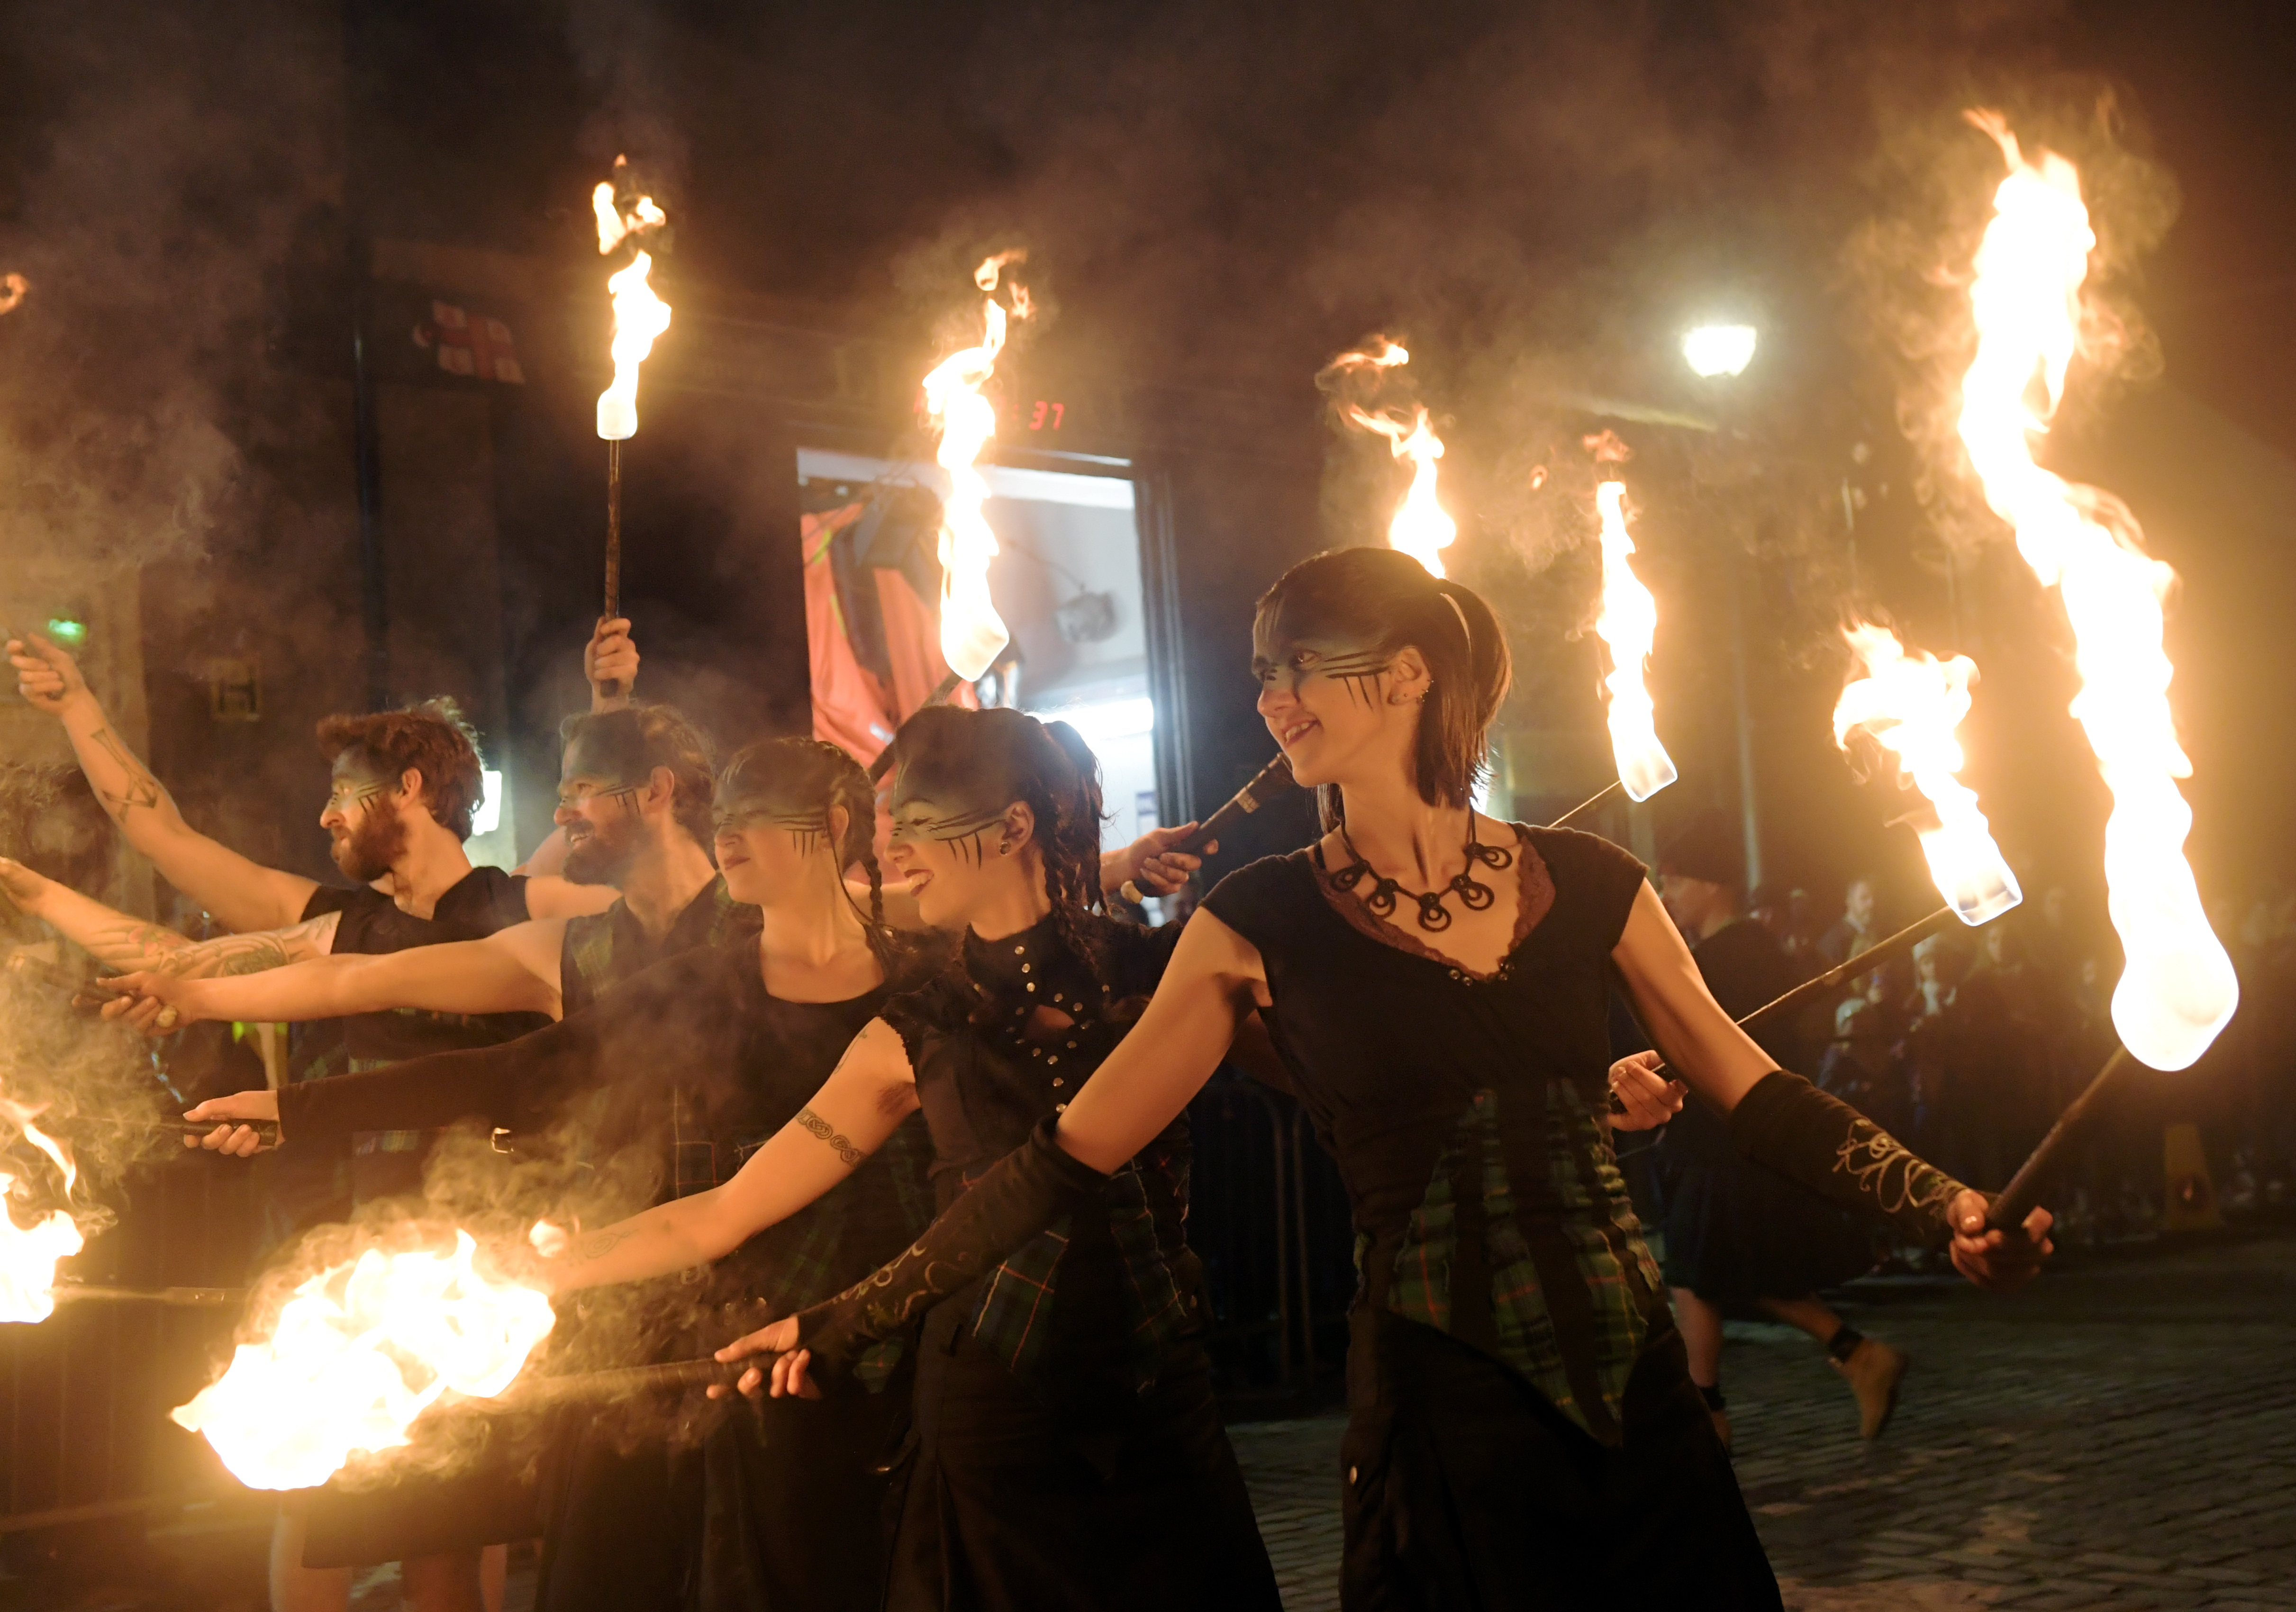 PyroCeltica perform their fire show.